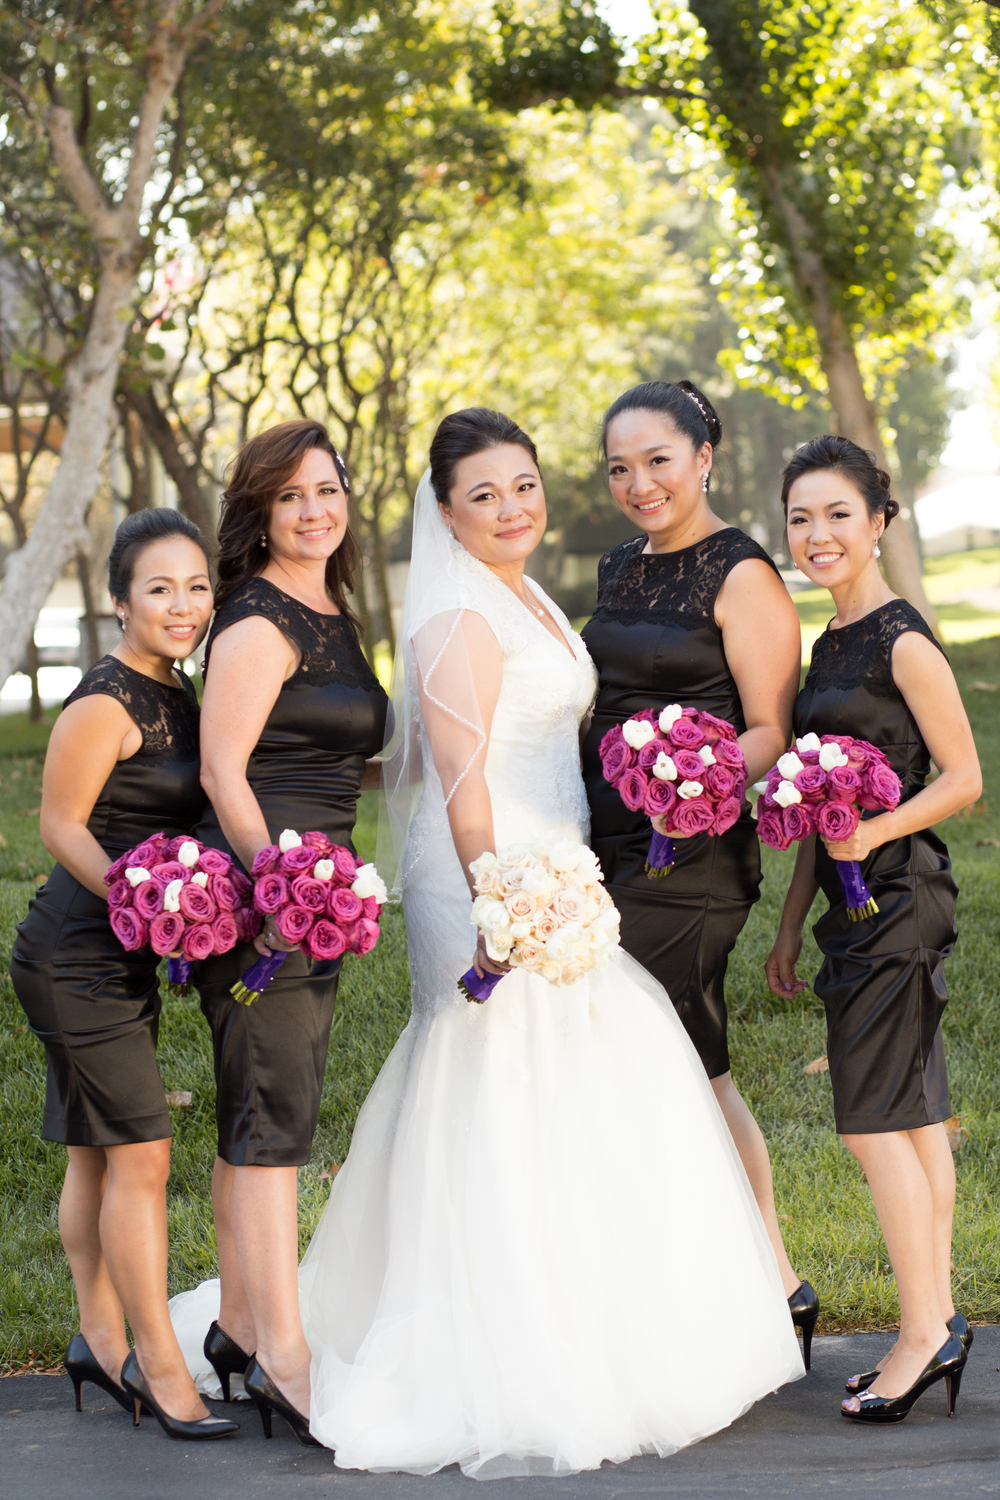 ToniSeanWeddingPartyPortraits0021.JPG